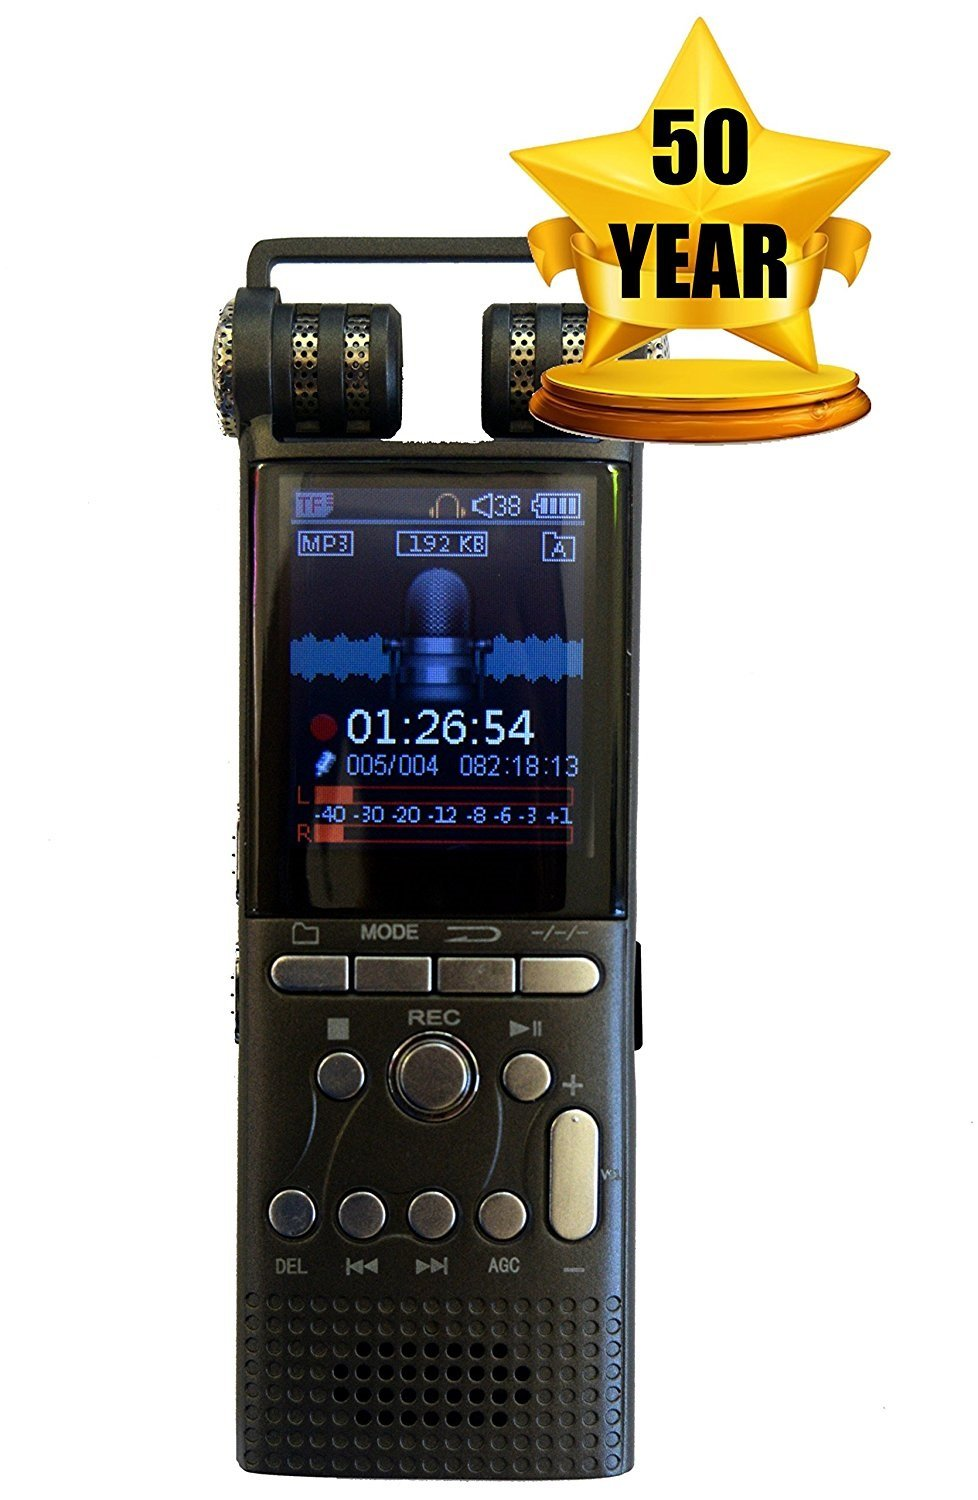 Cellphone and Landline Call Recording | Digital Voice Sound Recorder | For Smartphone and Celphone | Phone Audio Recorders | 50 Year Warranty by Techerific